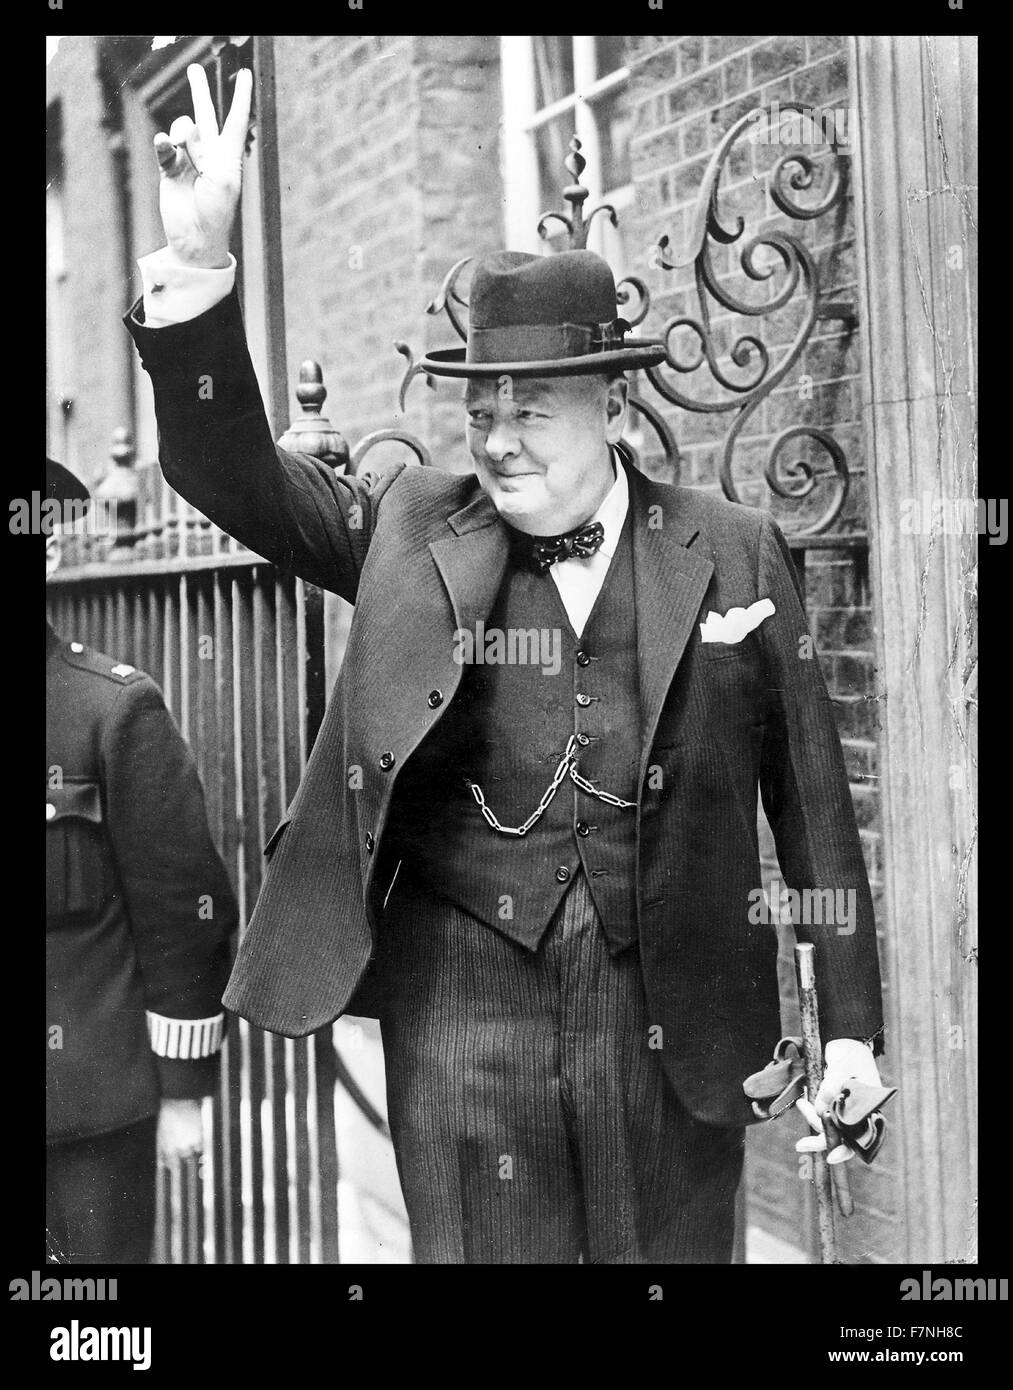 Photograph of Winston Churchill (1874-1965) British politician who was the Prime Minister of the United Kingdom. - Stock Image